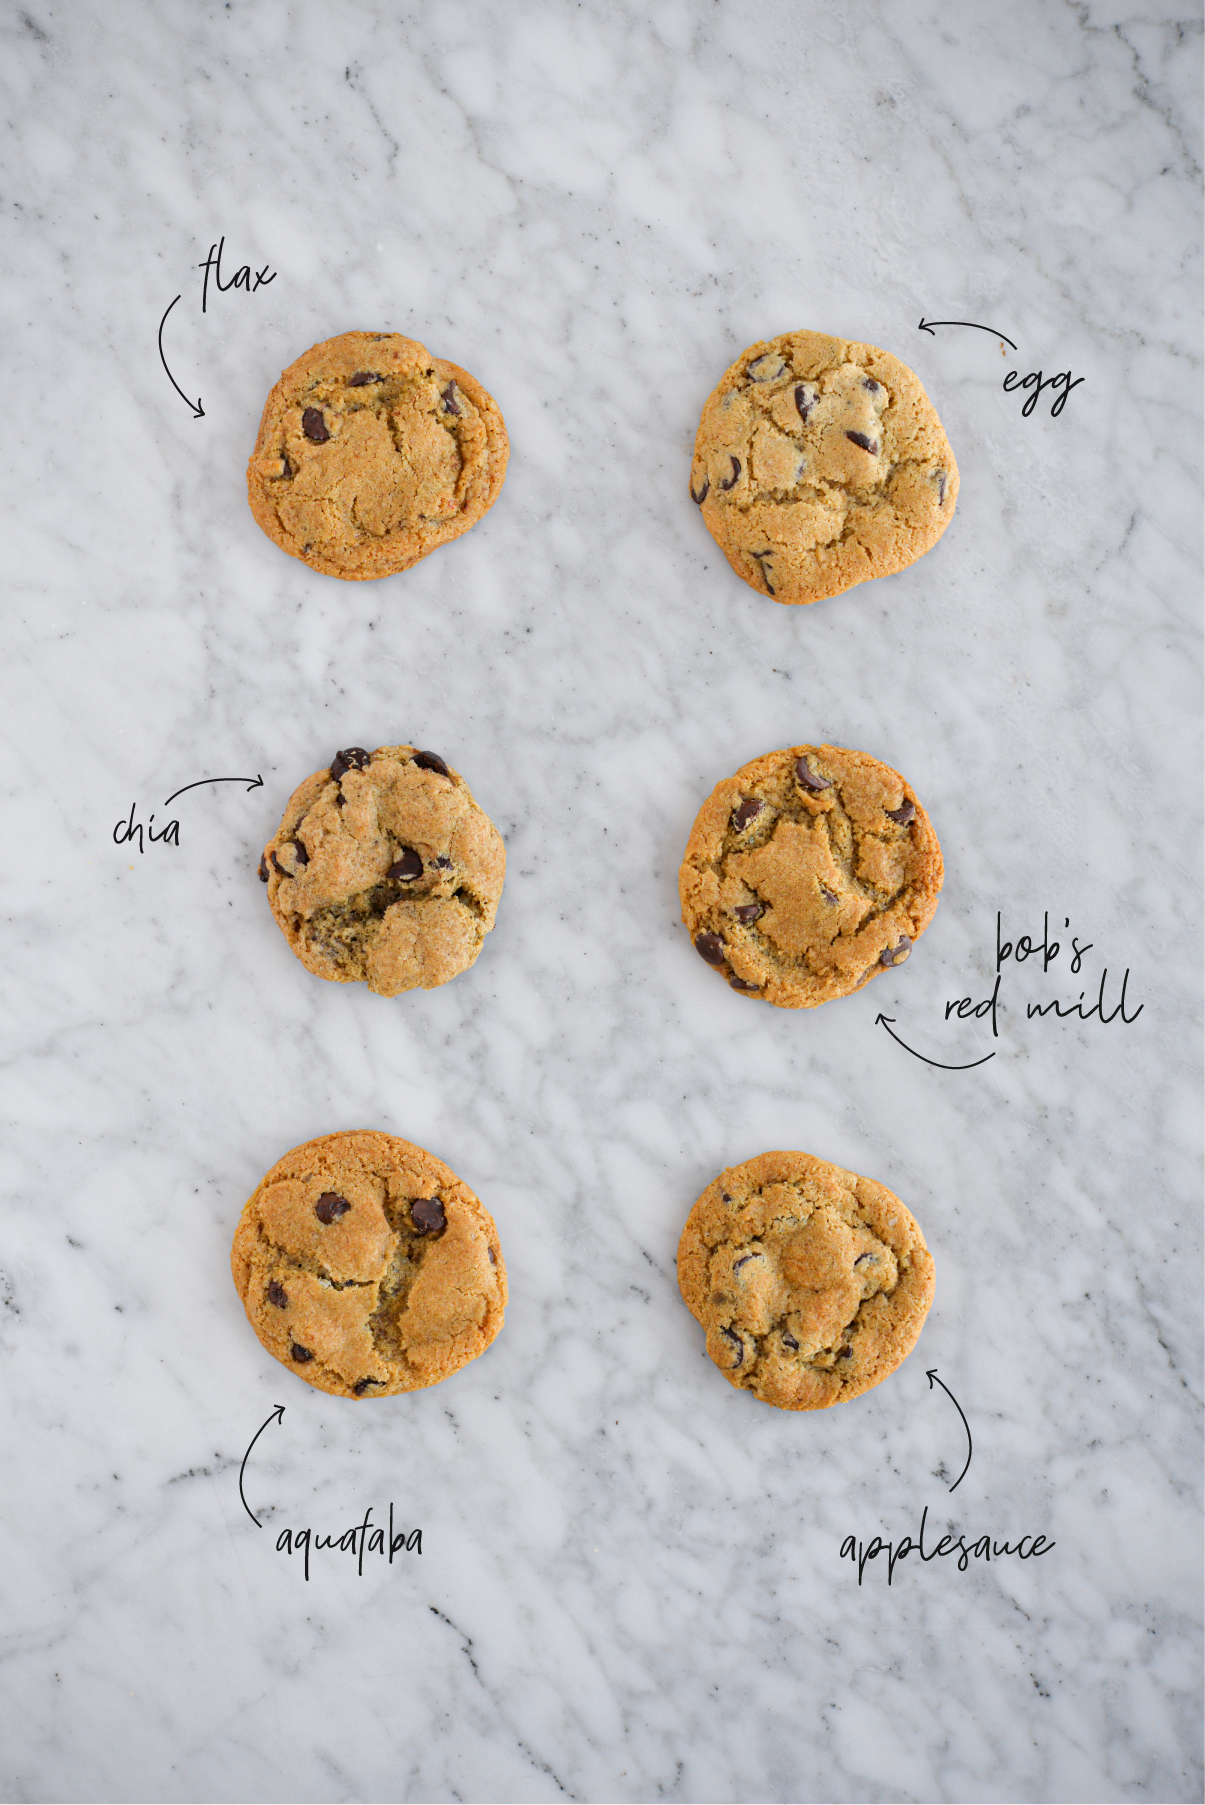 6 cookies lined up in 2 rows on a marble surface to compare different egg substitutes